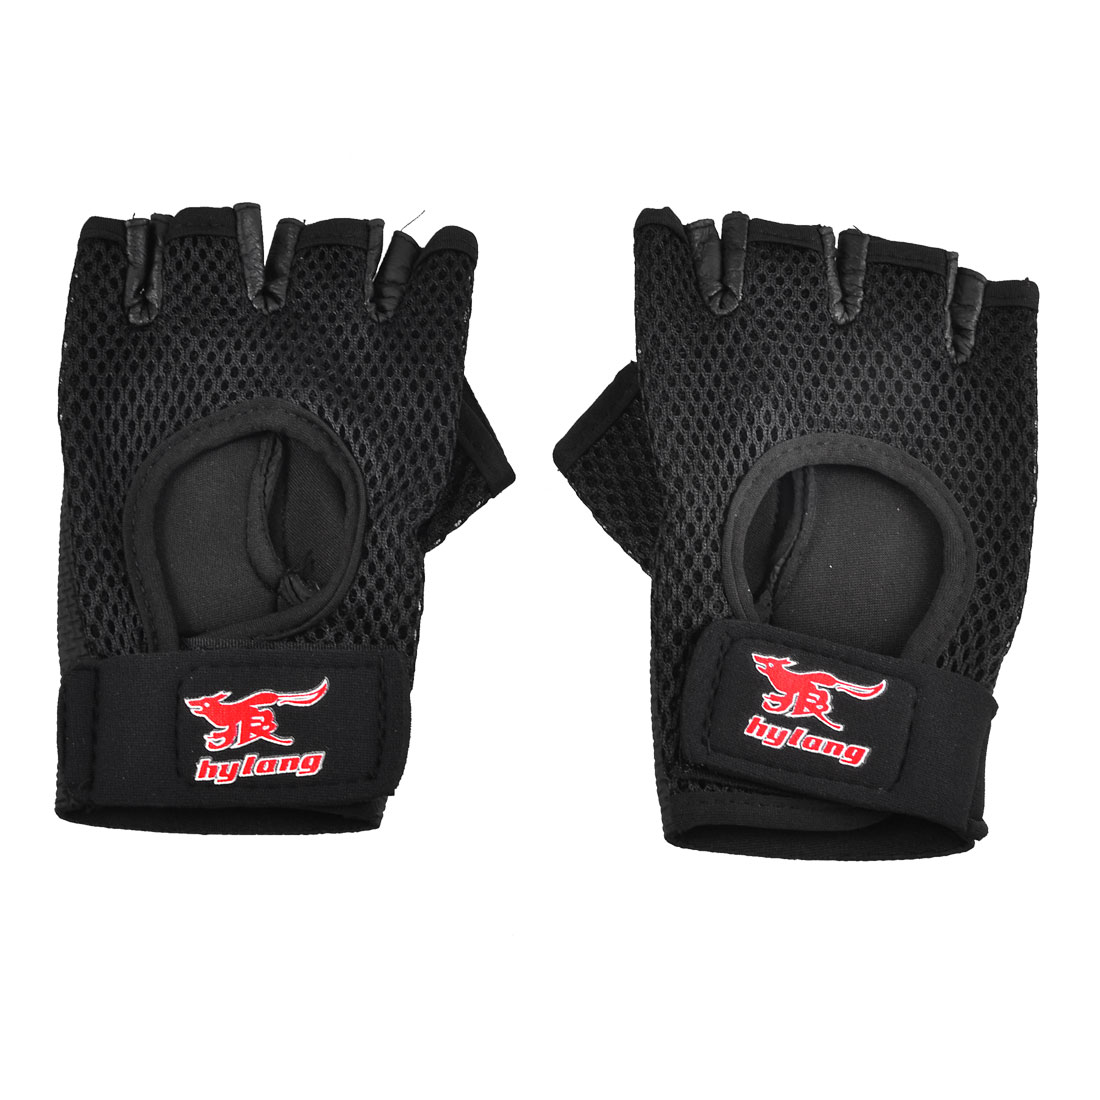 Exercise Hook and Loop Closure Half Finger Gloves Support Black Pair for Unisex